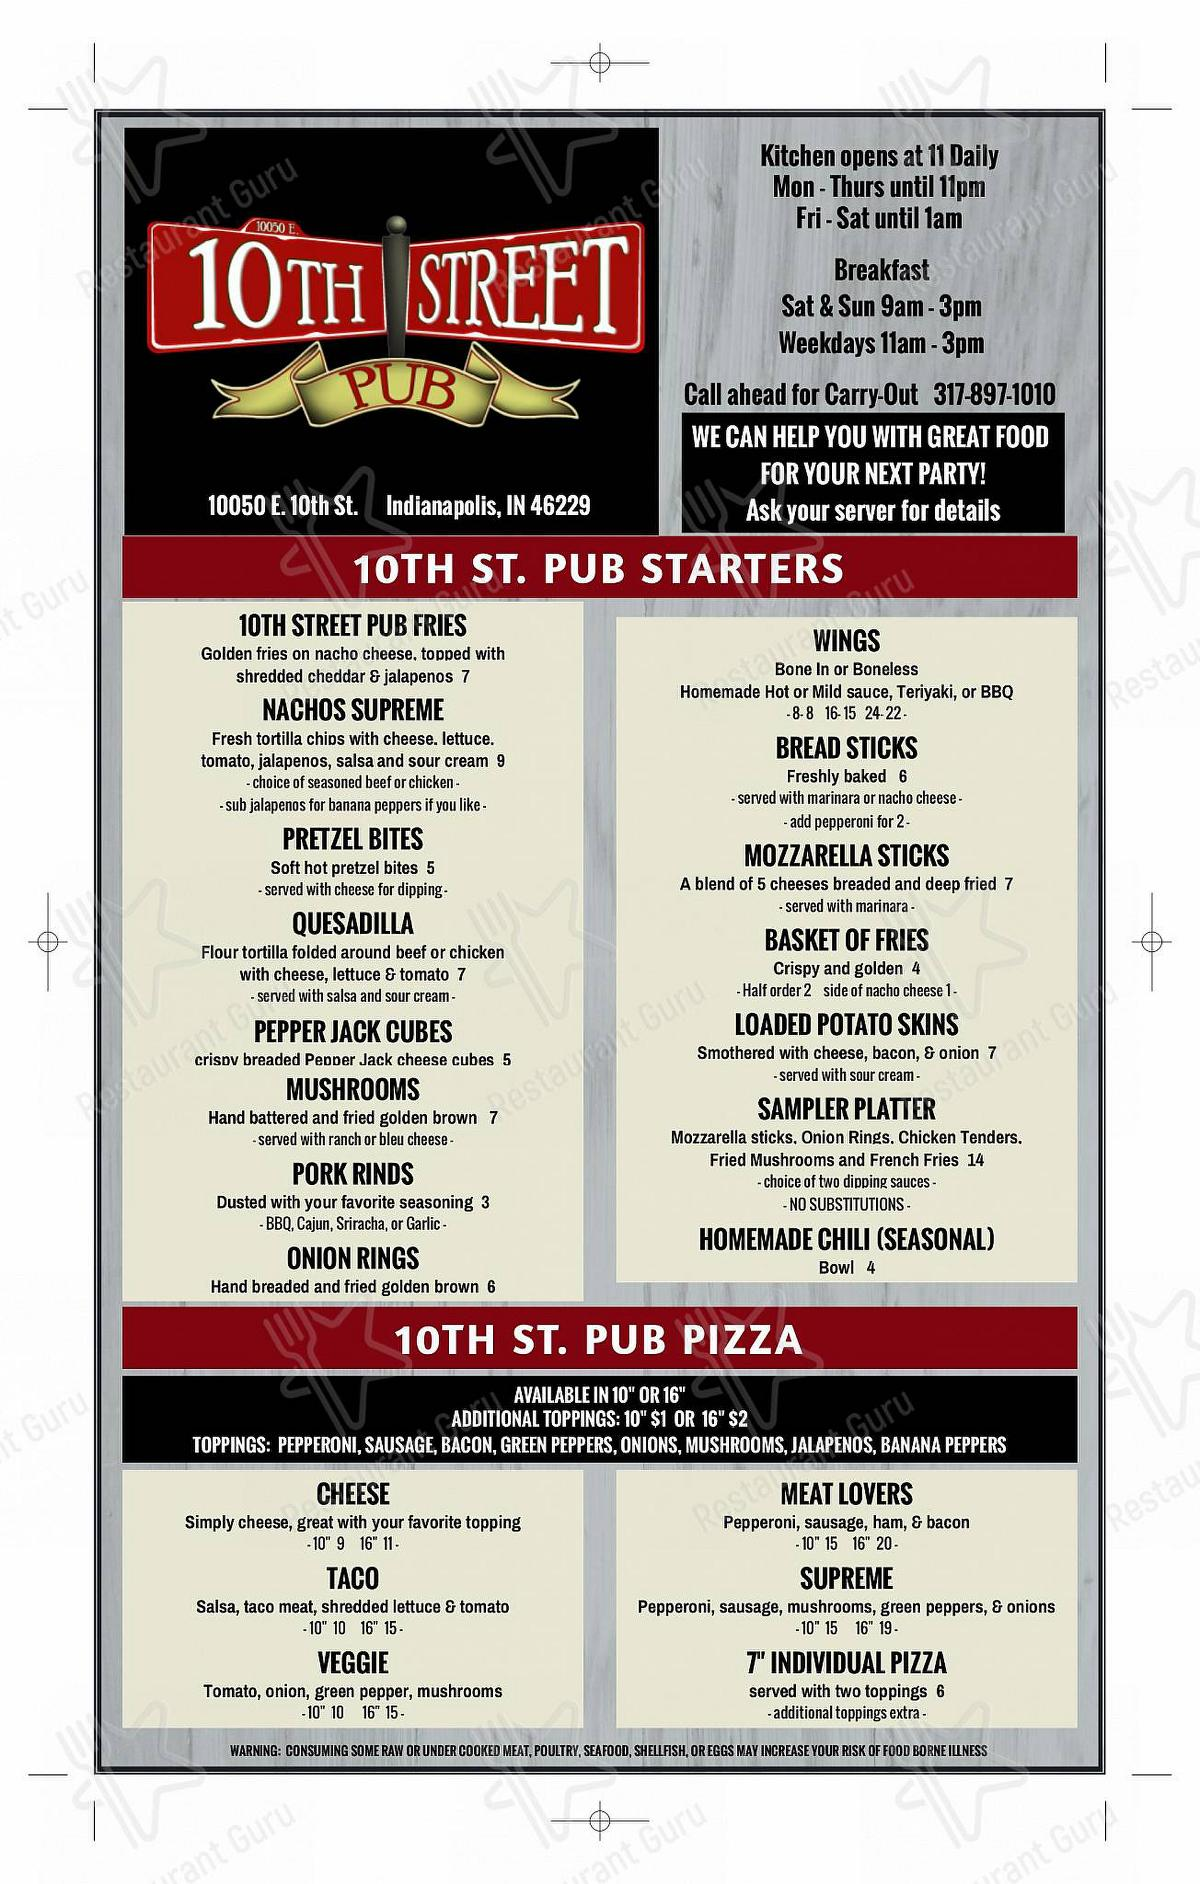 Check out the menu for 10th street pub